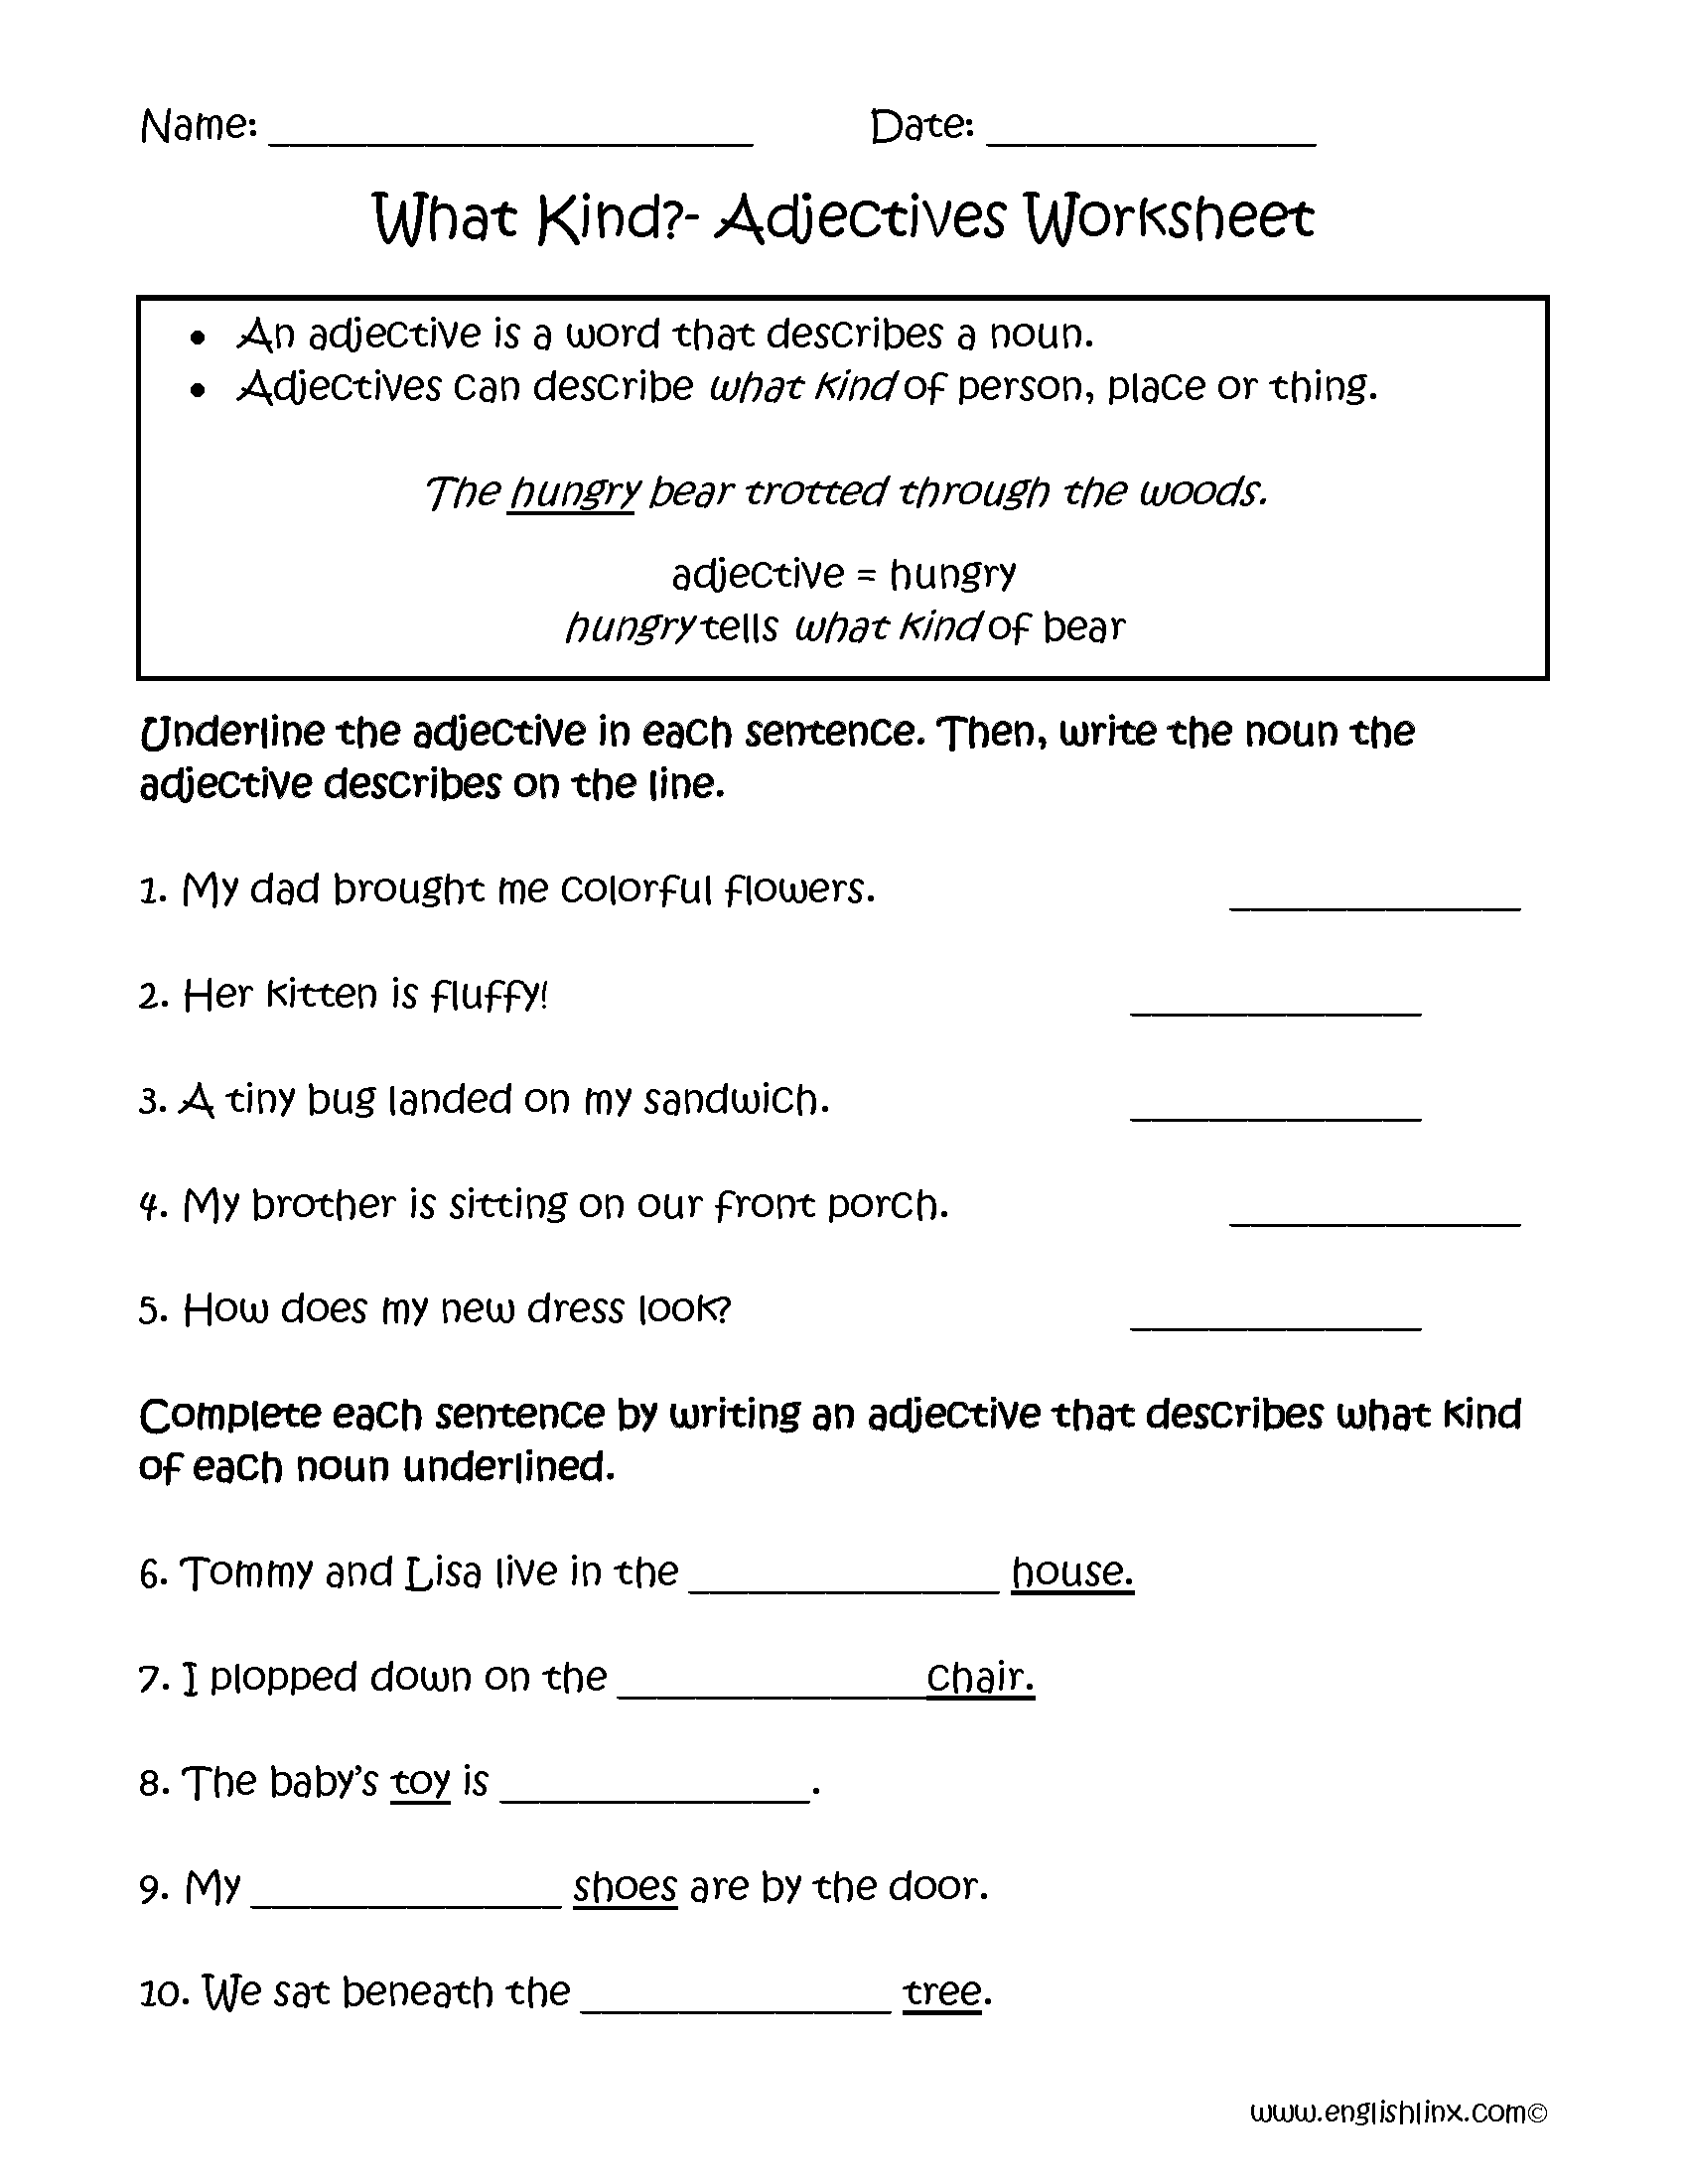 What Kind Adjectives Worksheets